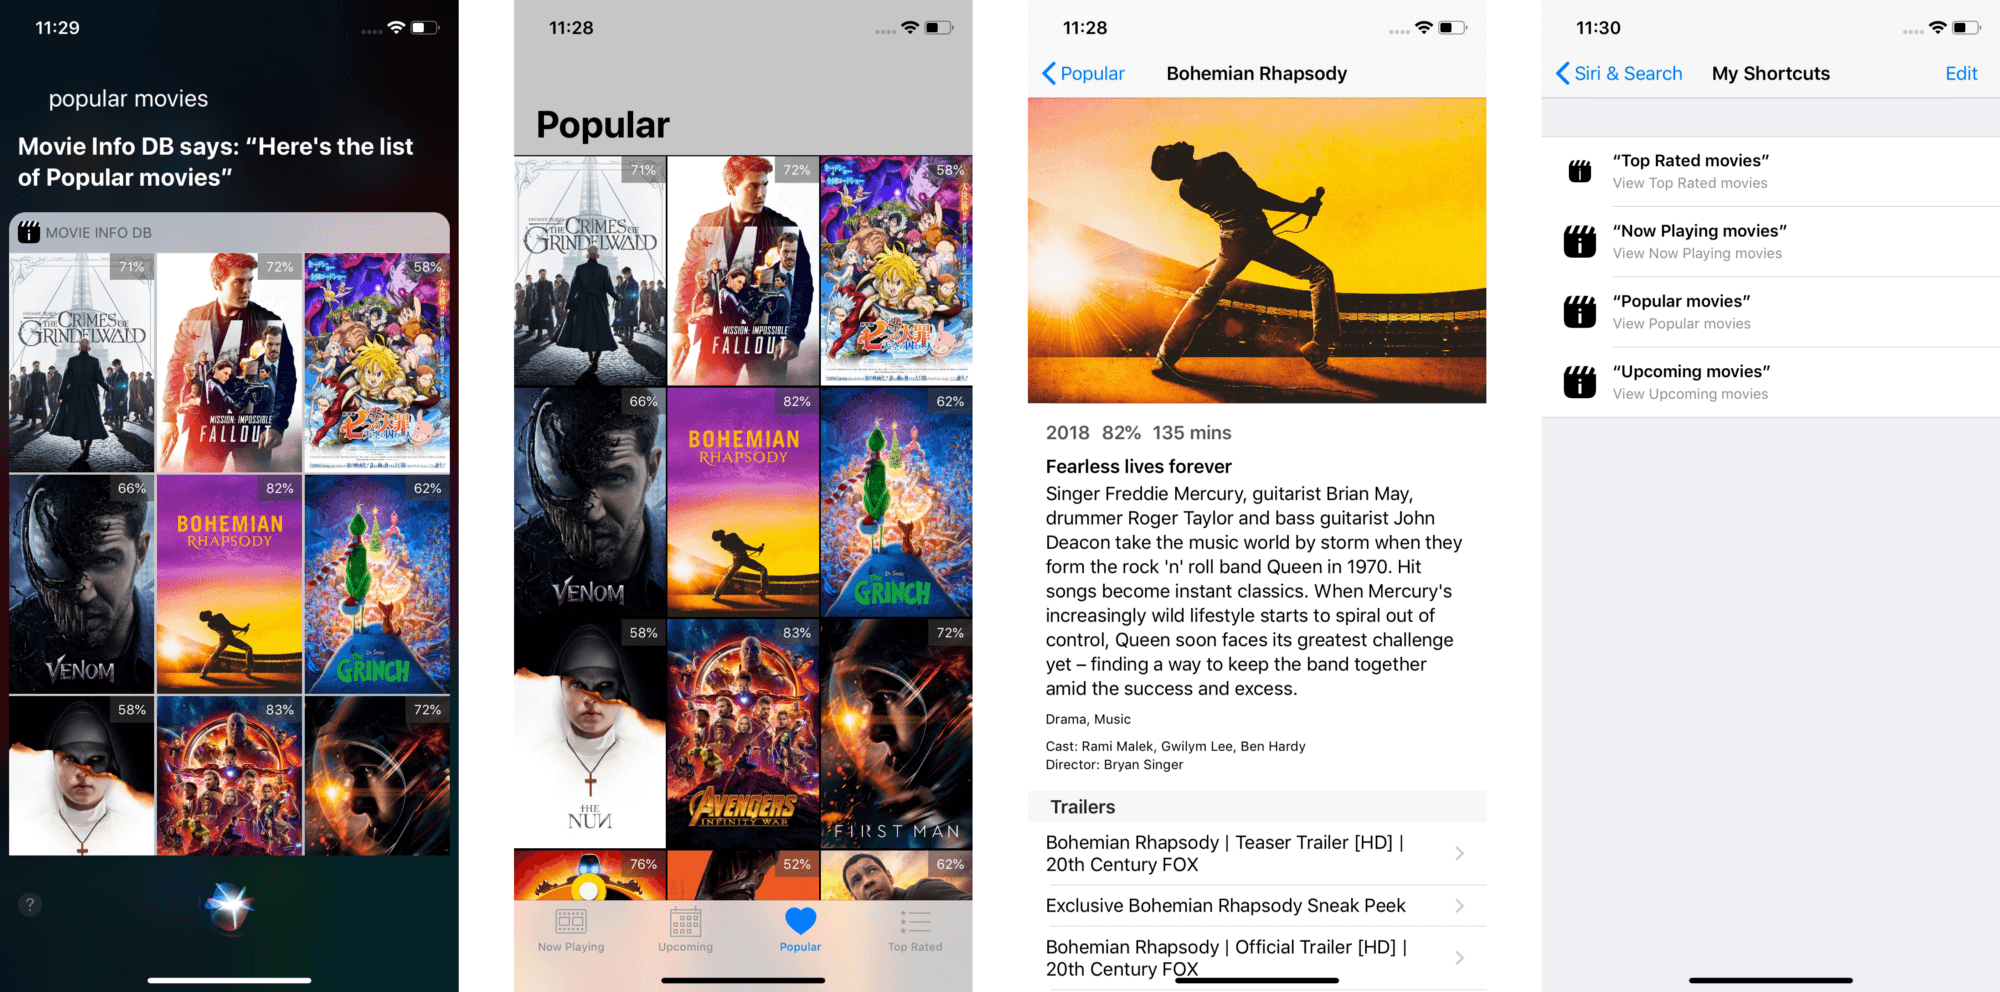 Siri Shortcuts API: Building a Voice App for Movie Search